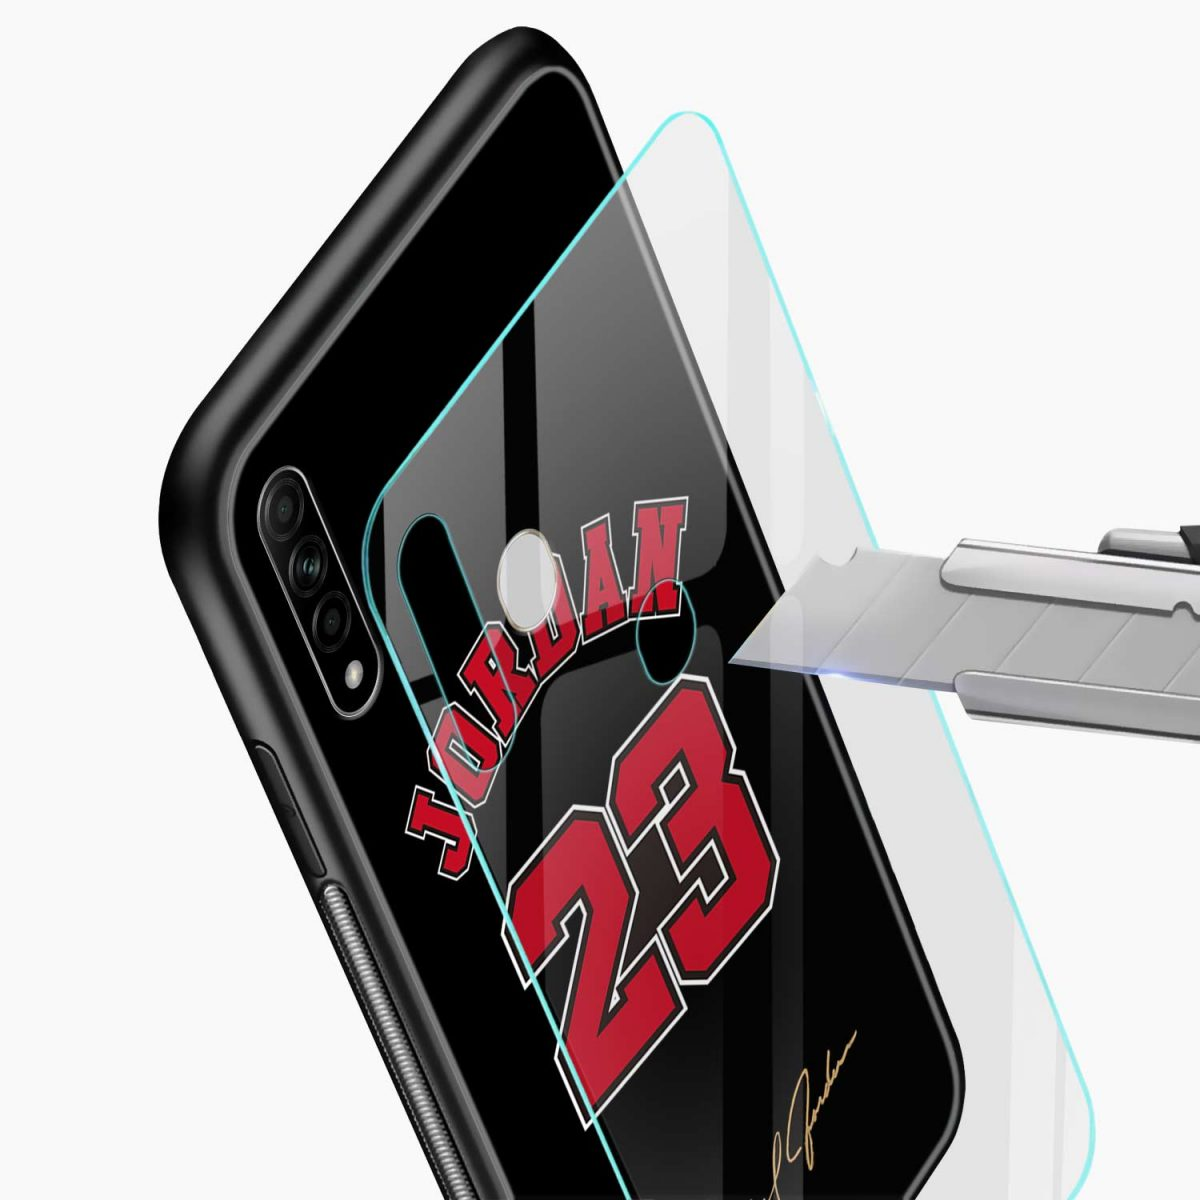 jordan 23 glass view oppo a31 back cover